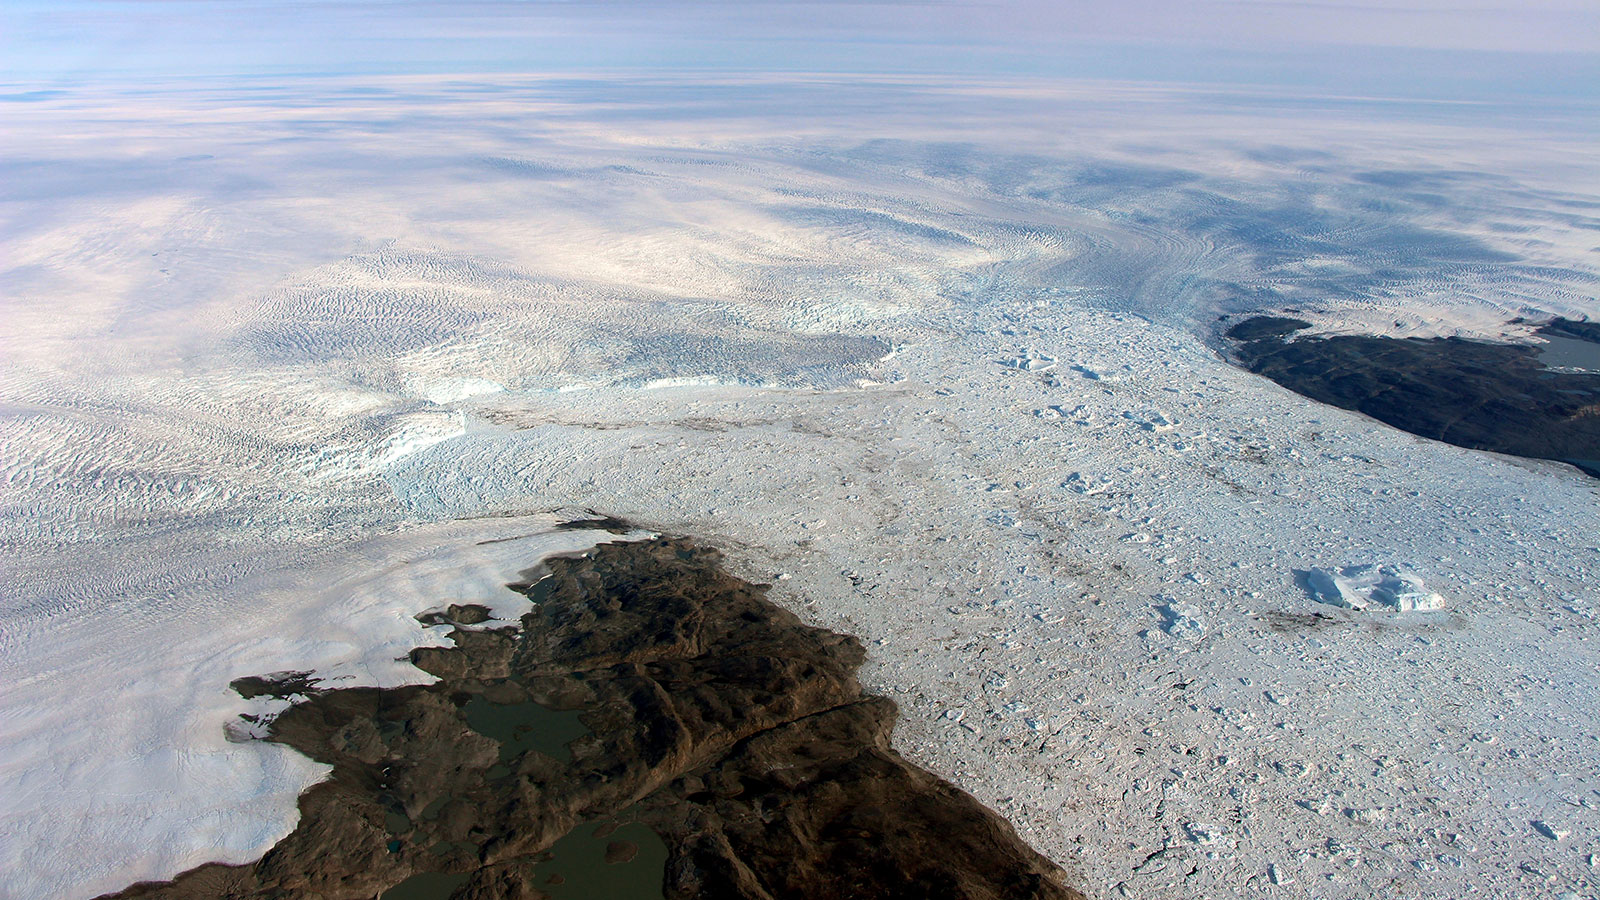 55b2e2a70cf Cold Water Currently Slowing Fastest Greenland Glacier | NASA